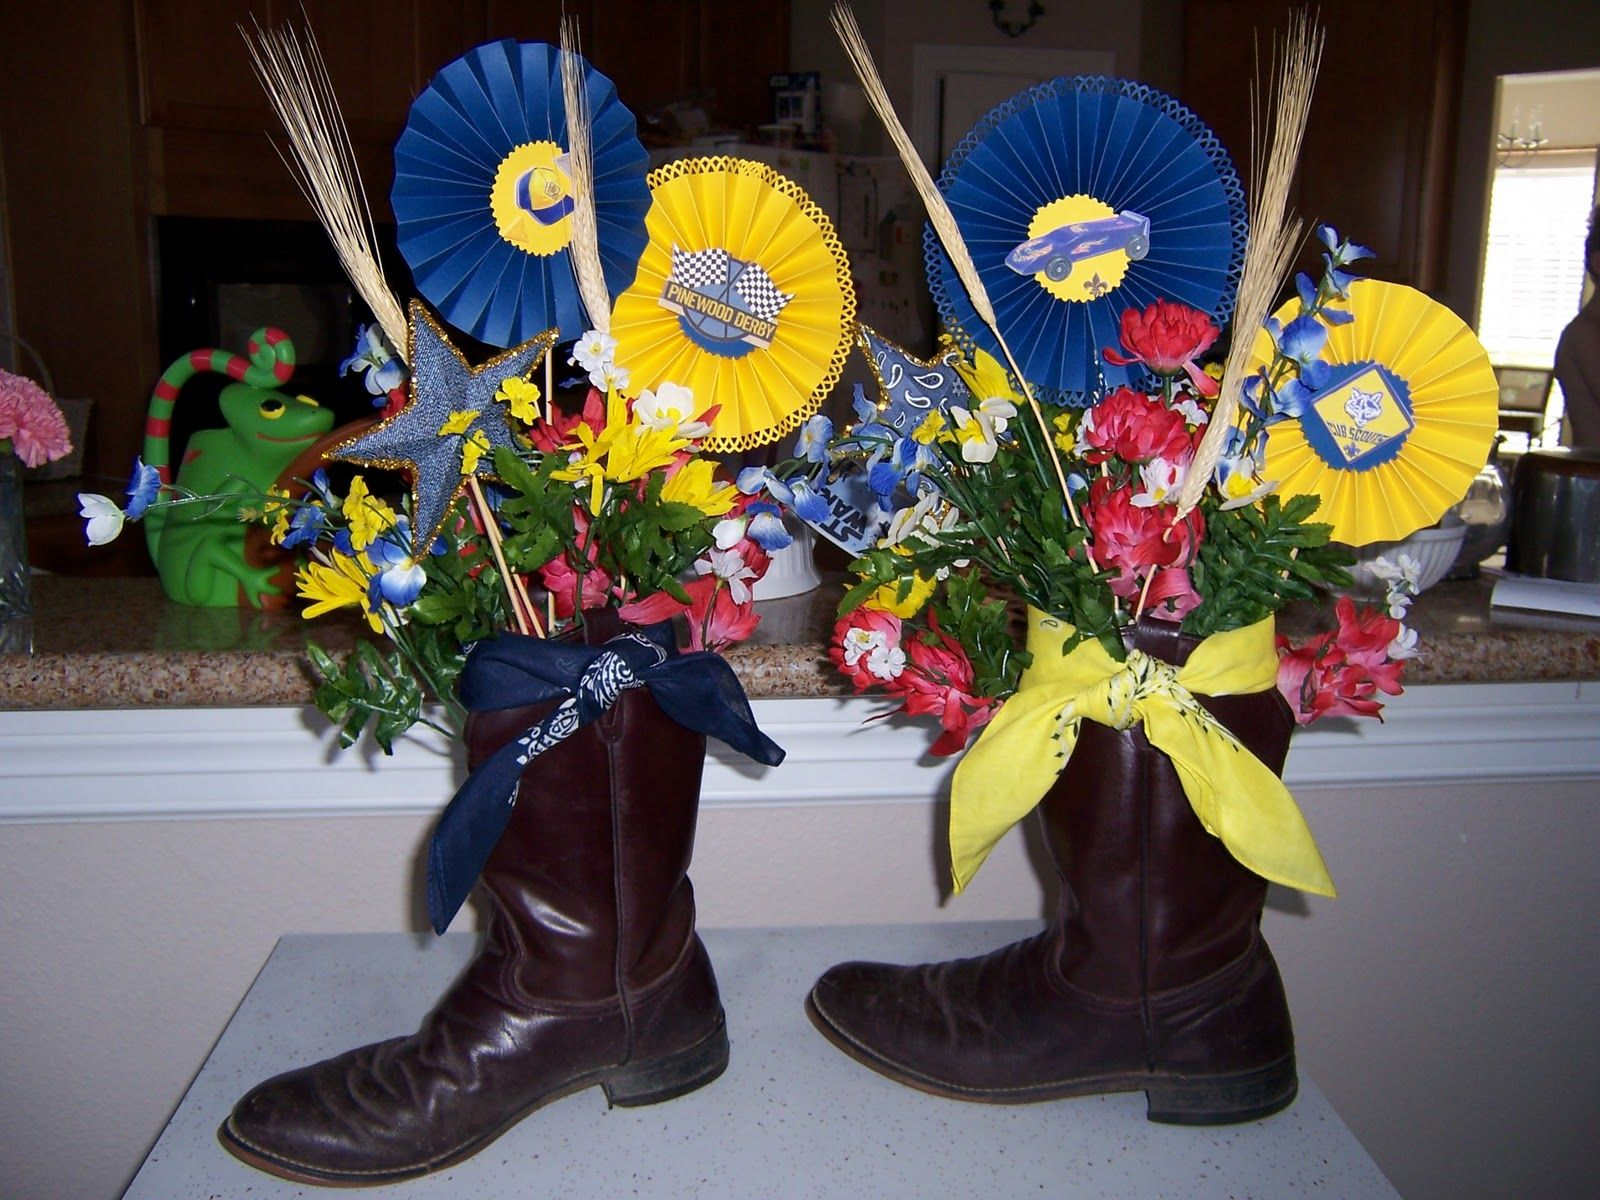 Blue and gold banquet centerpieces using his boots as